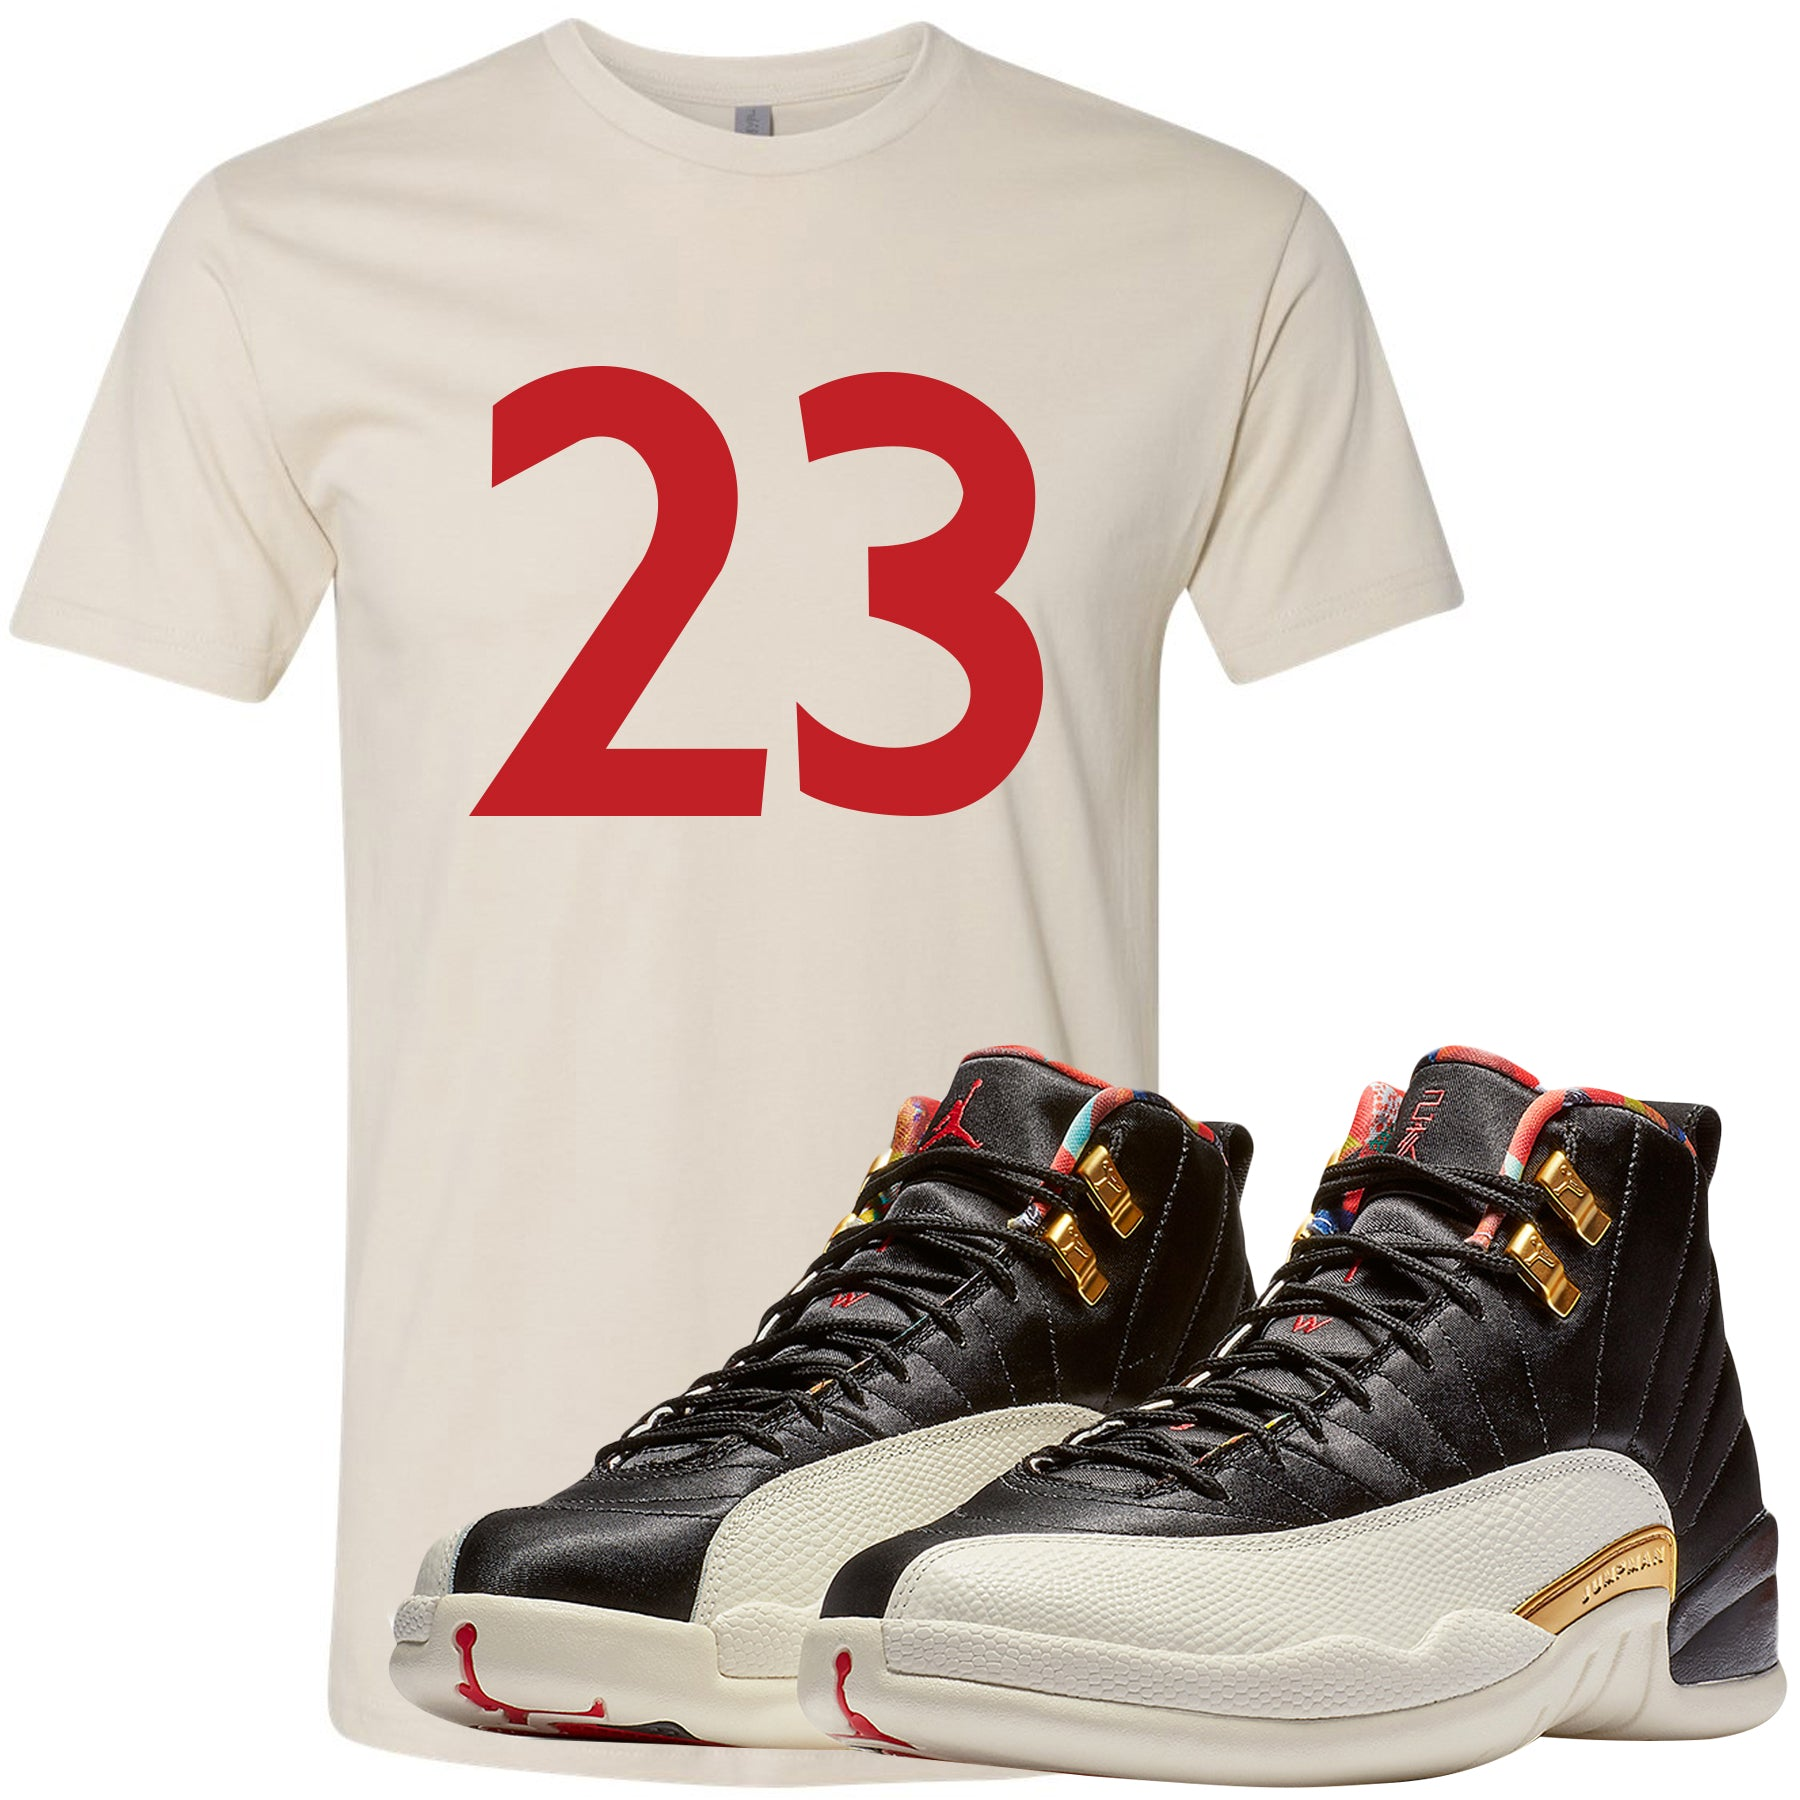 the latest 57ccb ed0a2 Jordan 12 Chinese New Year Sneaker Matching 23 Cream T-Shirt